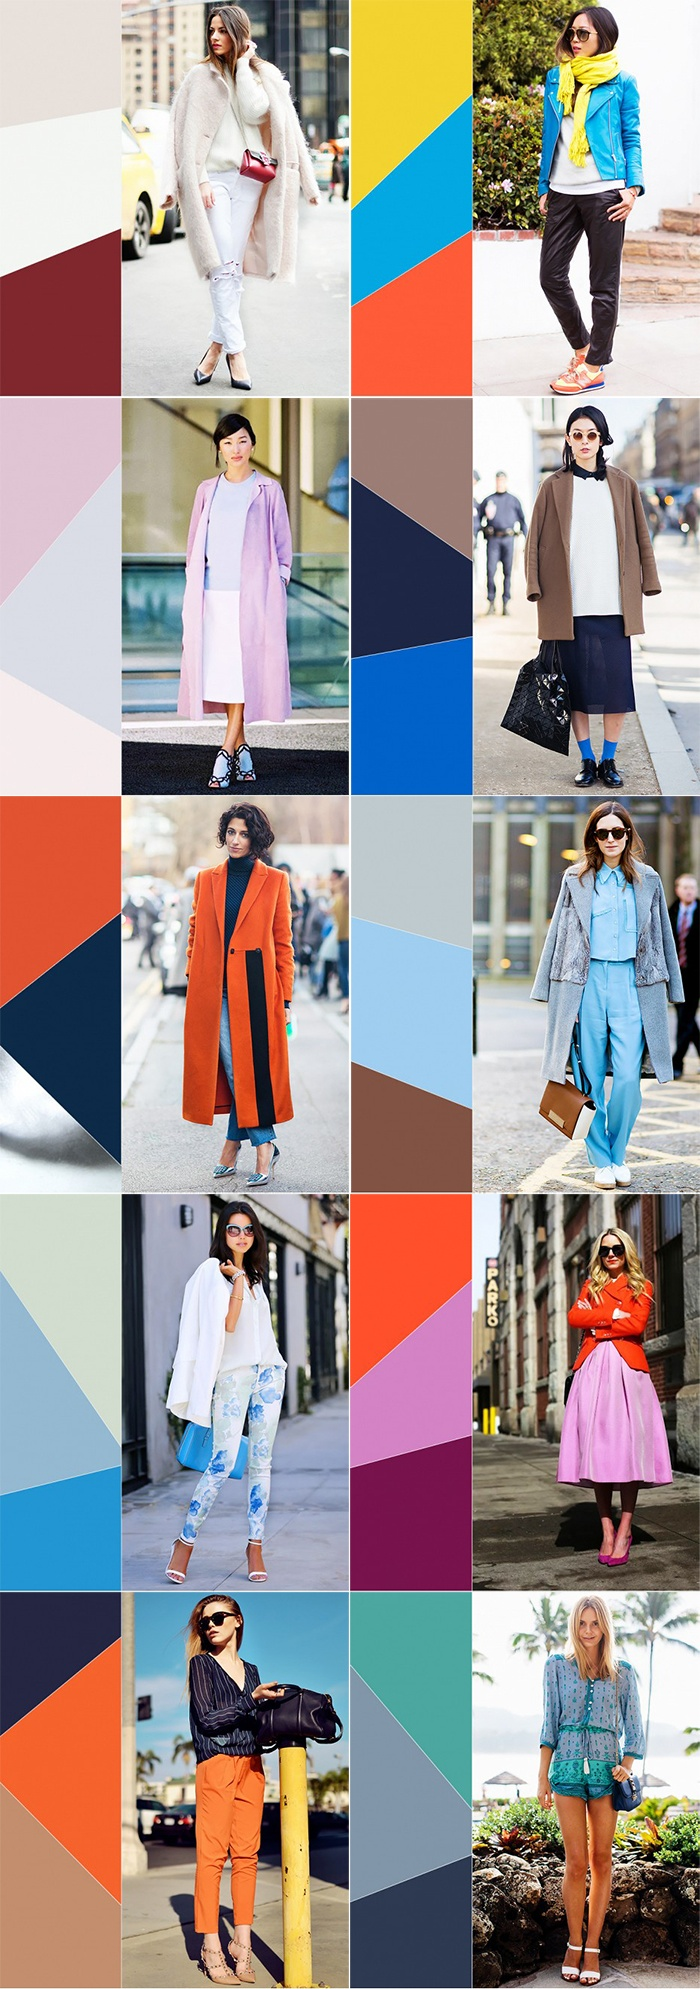 11-CHIC-COLOR-COMBINATIONS-TO-WEAR-THIS-SPRING